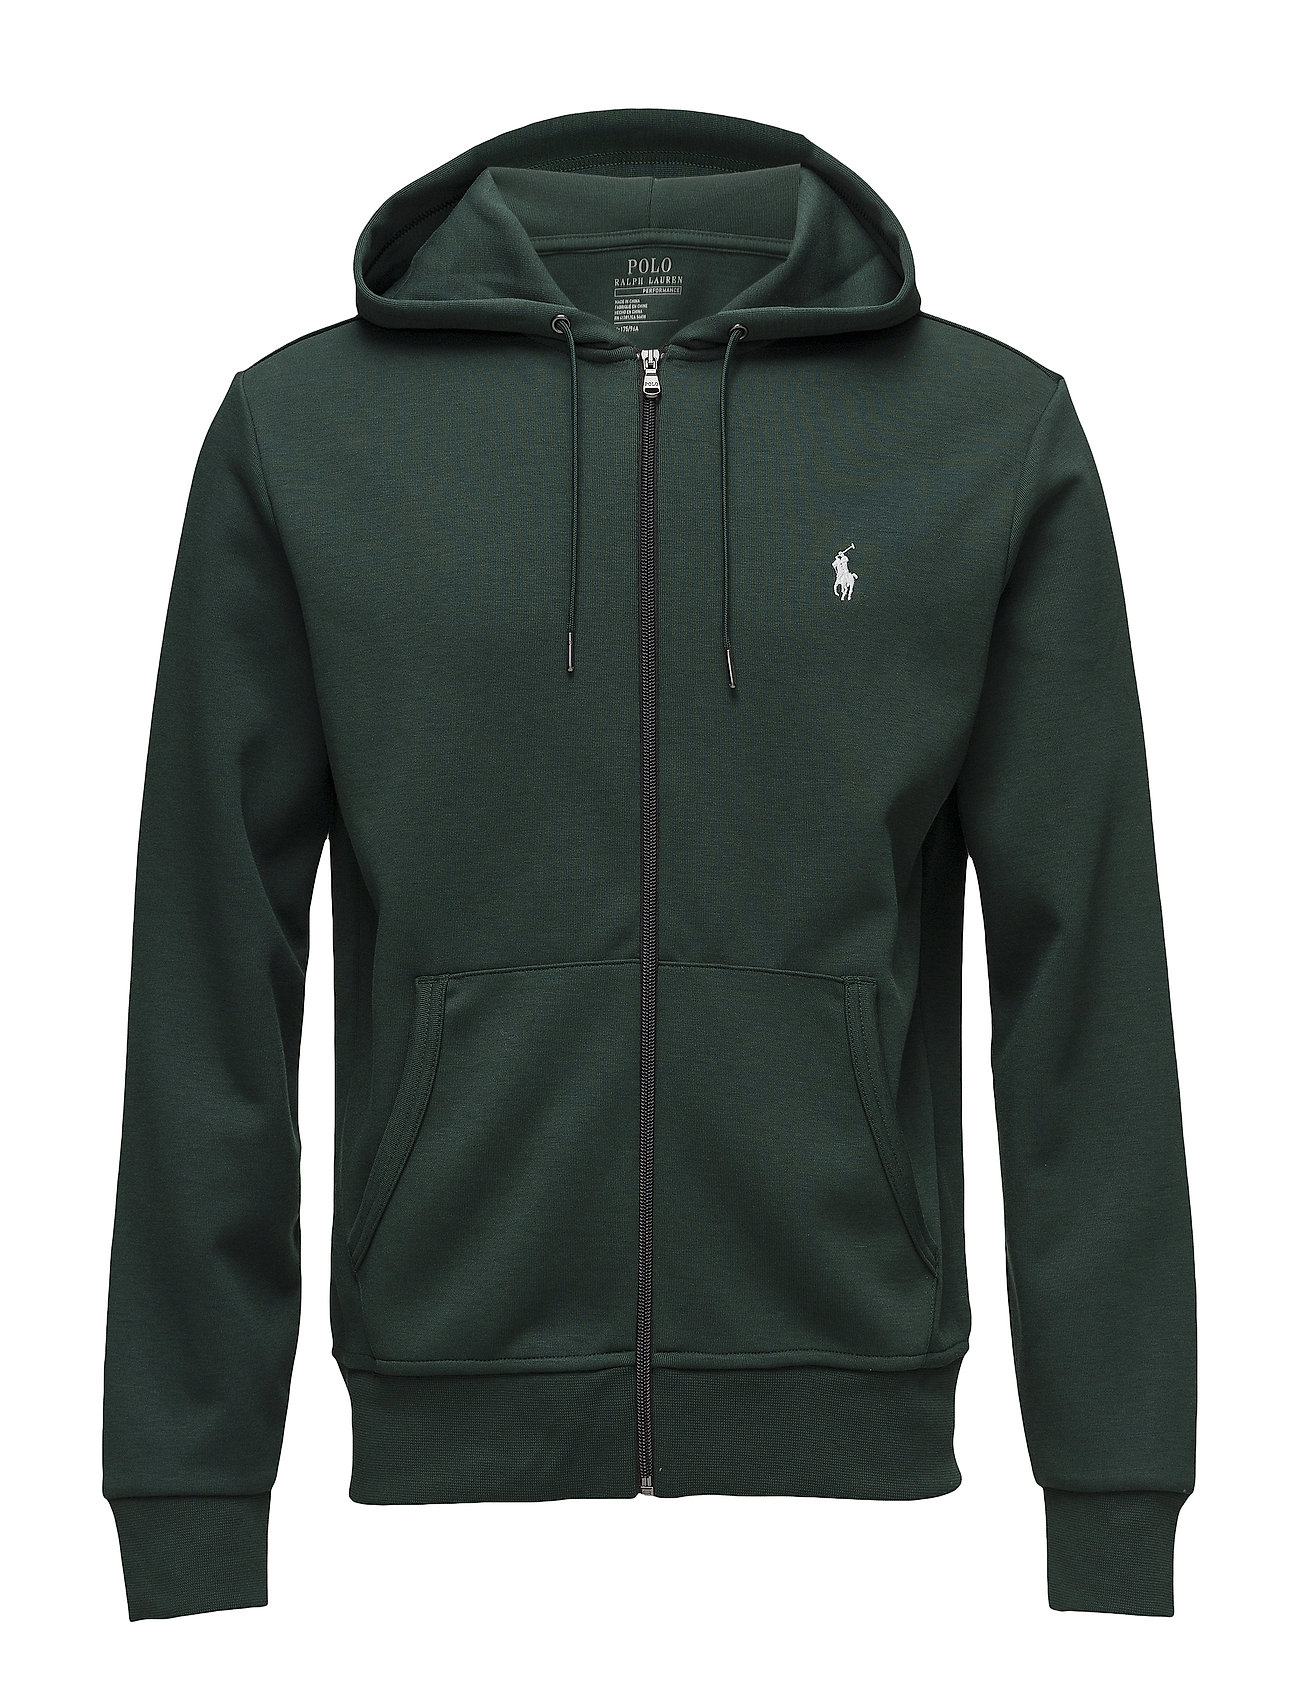 26036c8df5f Double-knit Full-zip Hoodie (College Green) (£75) - Polo Ralph ...